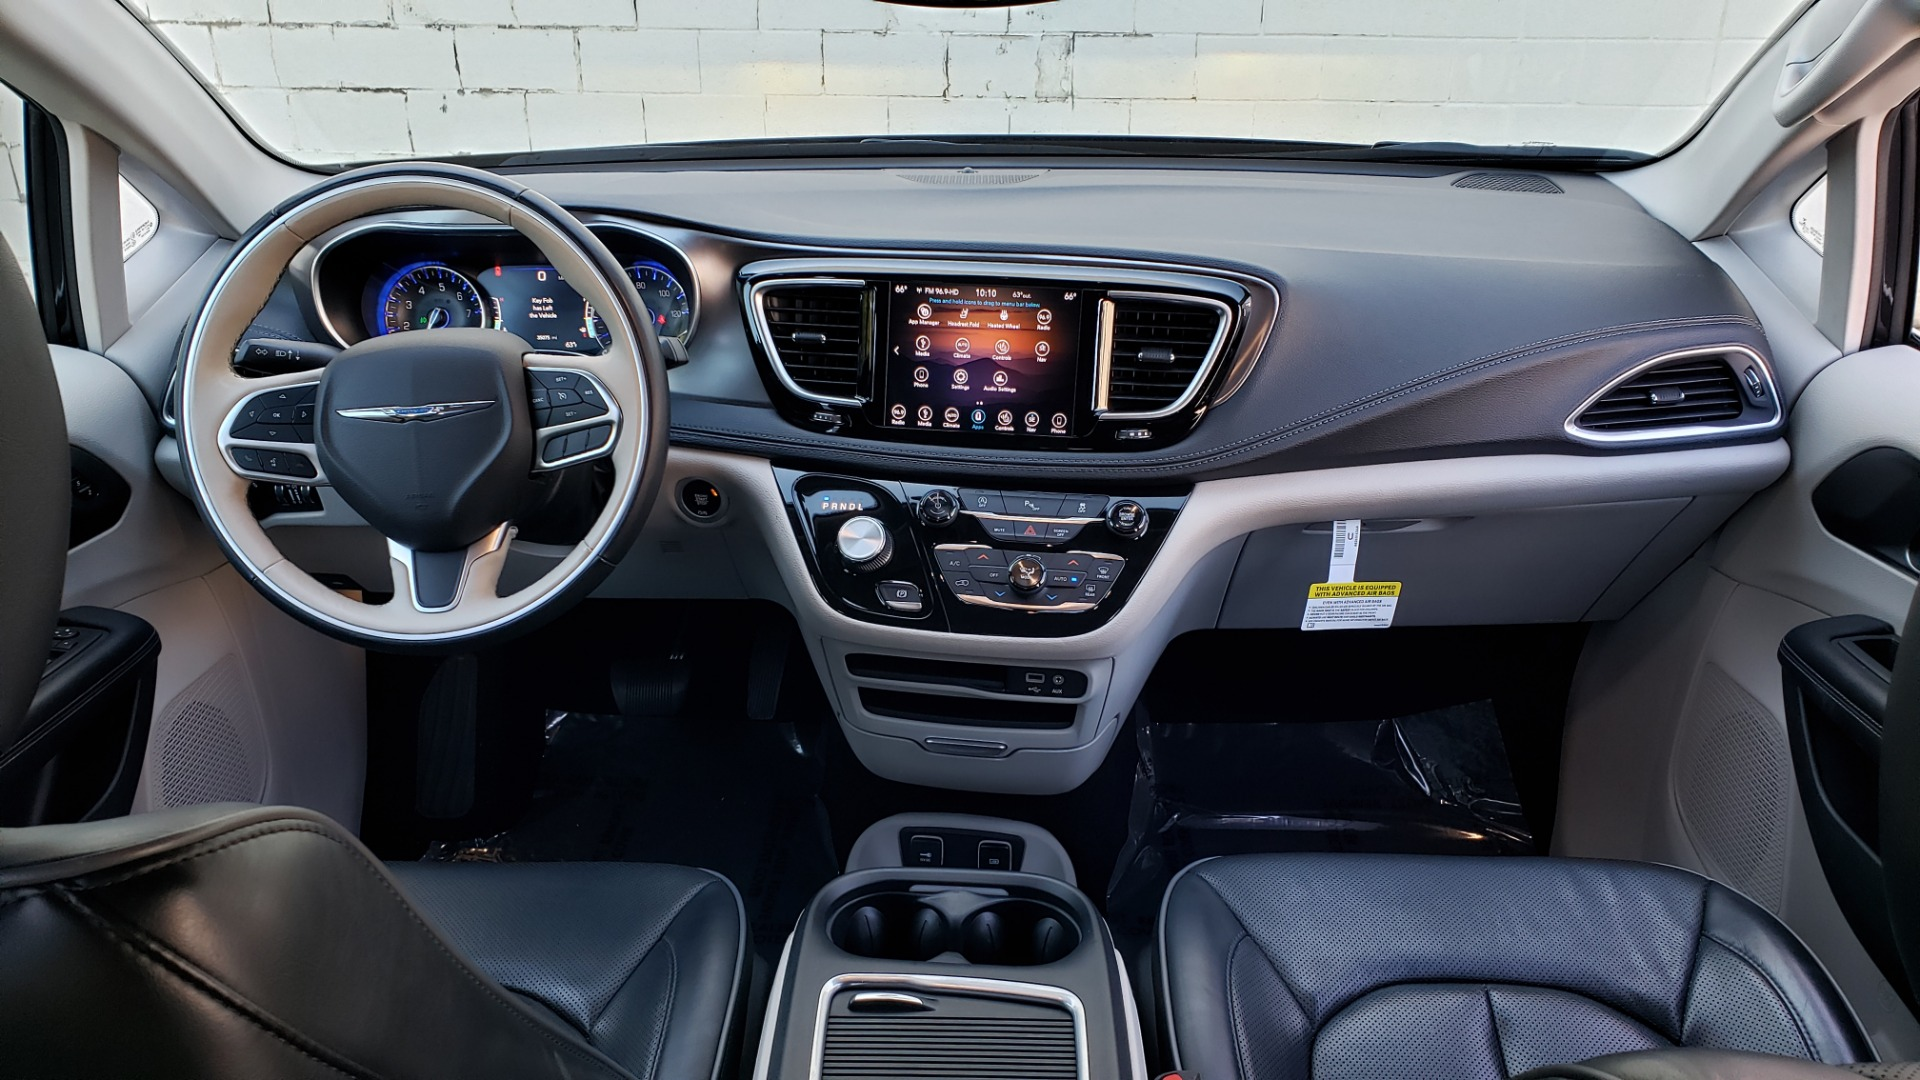 Used 2018 Chrysler PACIFICA LIMITED / 3.6L V6 / NAV / PANO-ROOF / 3-ROWS / REARVIEW for sale Sold at Formula Imports in Charlotte NC 28227 81